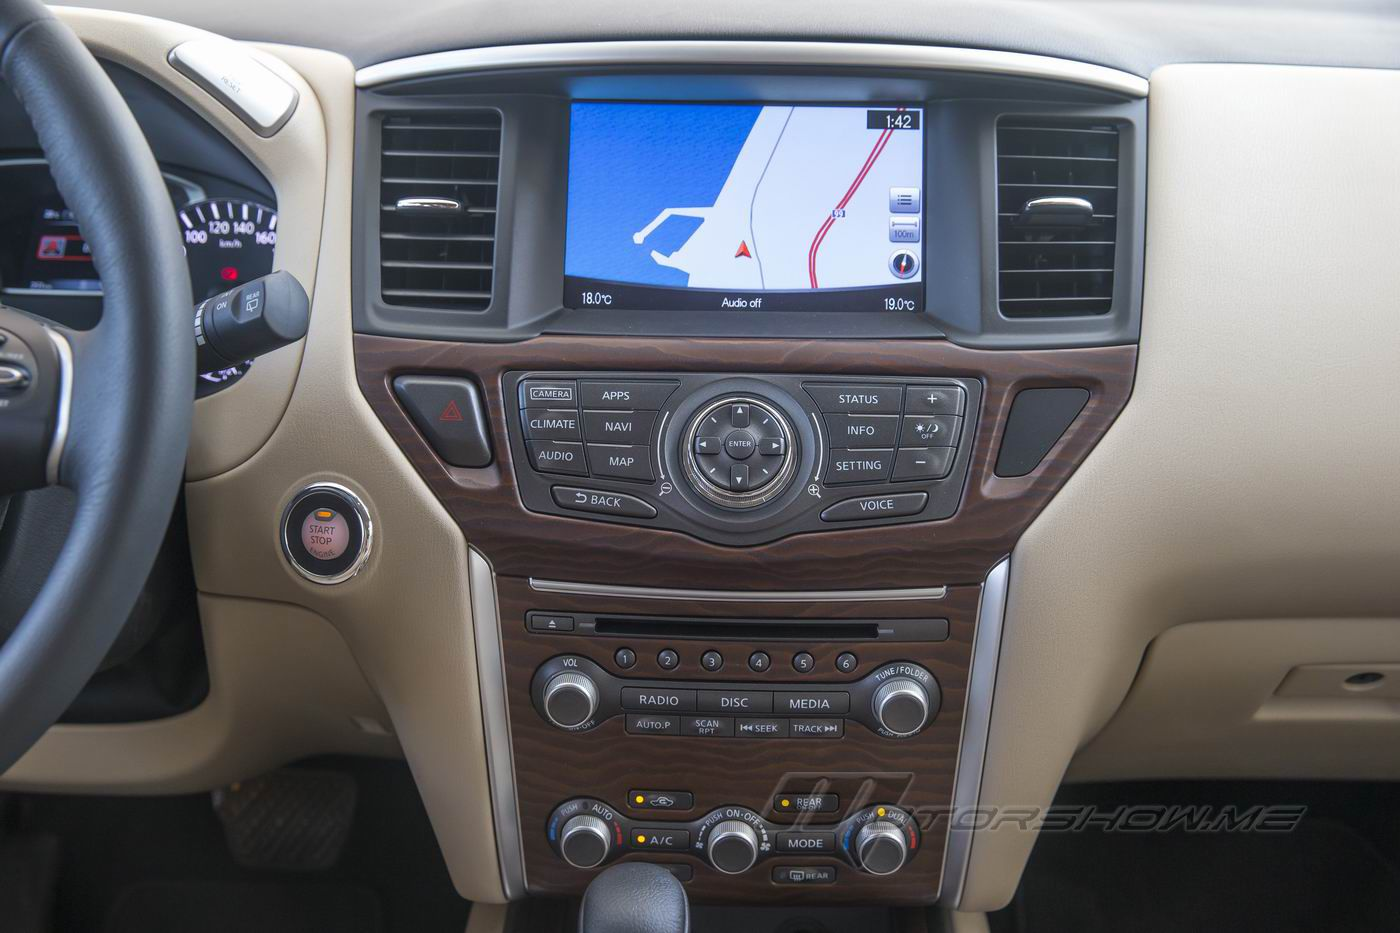 2018 nissan pathfinder interior. simple nissan the enhancements to the pathfinder interior for 2018 focus on convenience  and connectivity for example cupholders have been reshaped accommodate  nissan pathfinder s